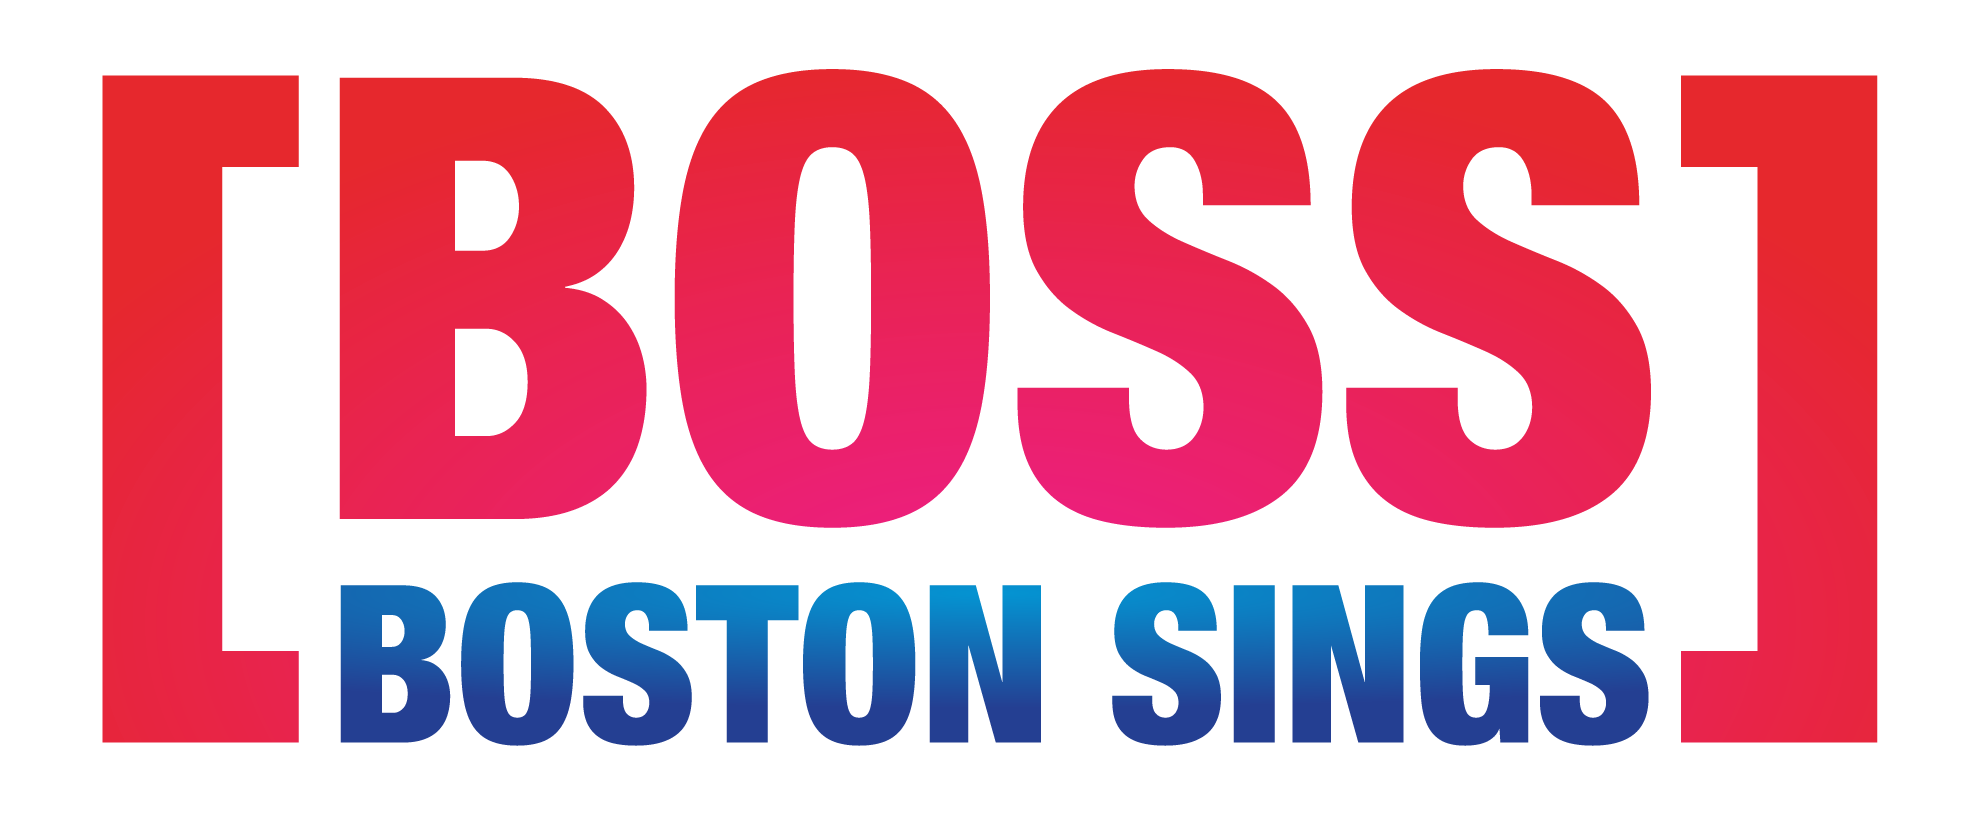 boss logo text only